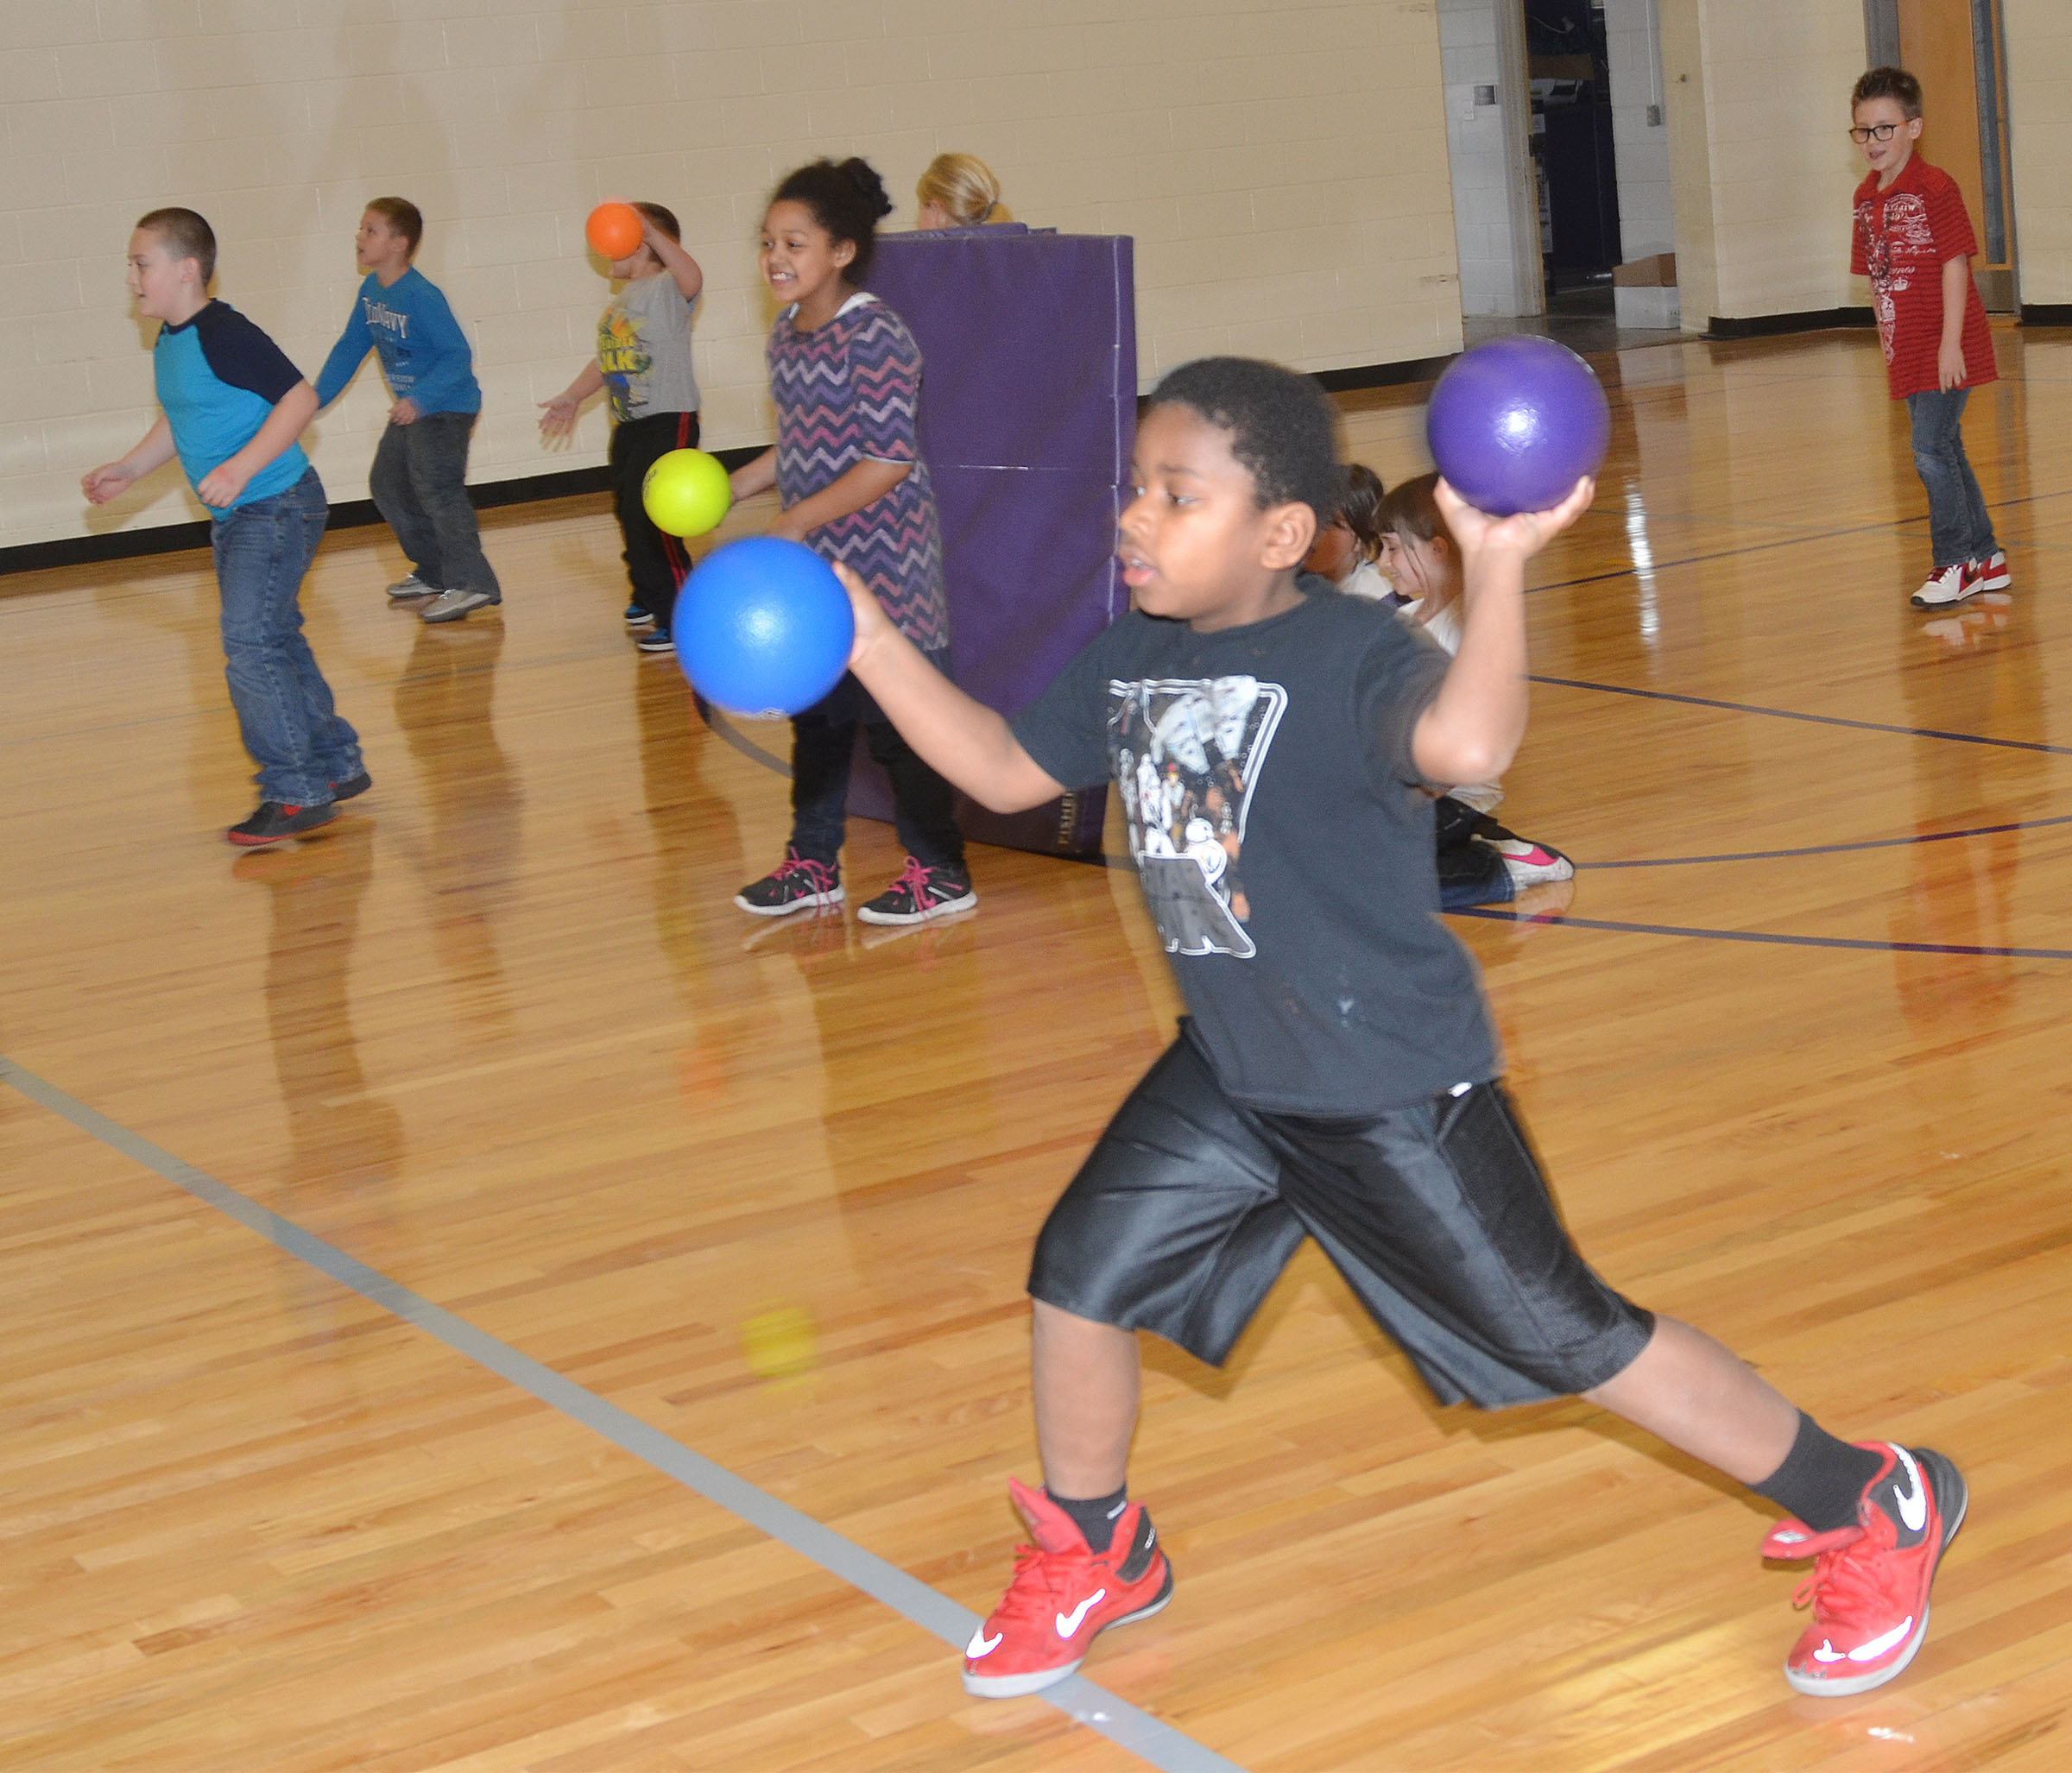 CES second-grader Elijah Spurling throws a dodgeball.